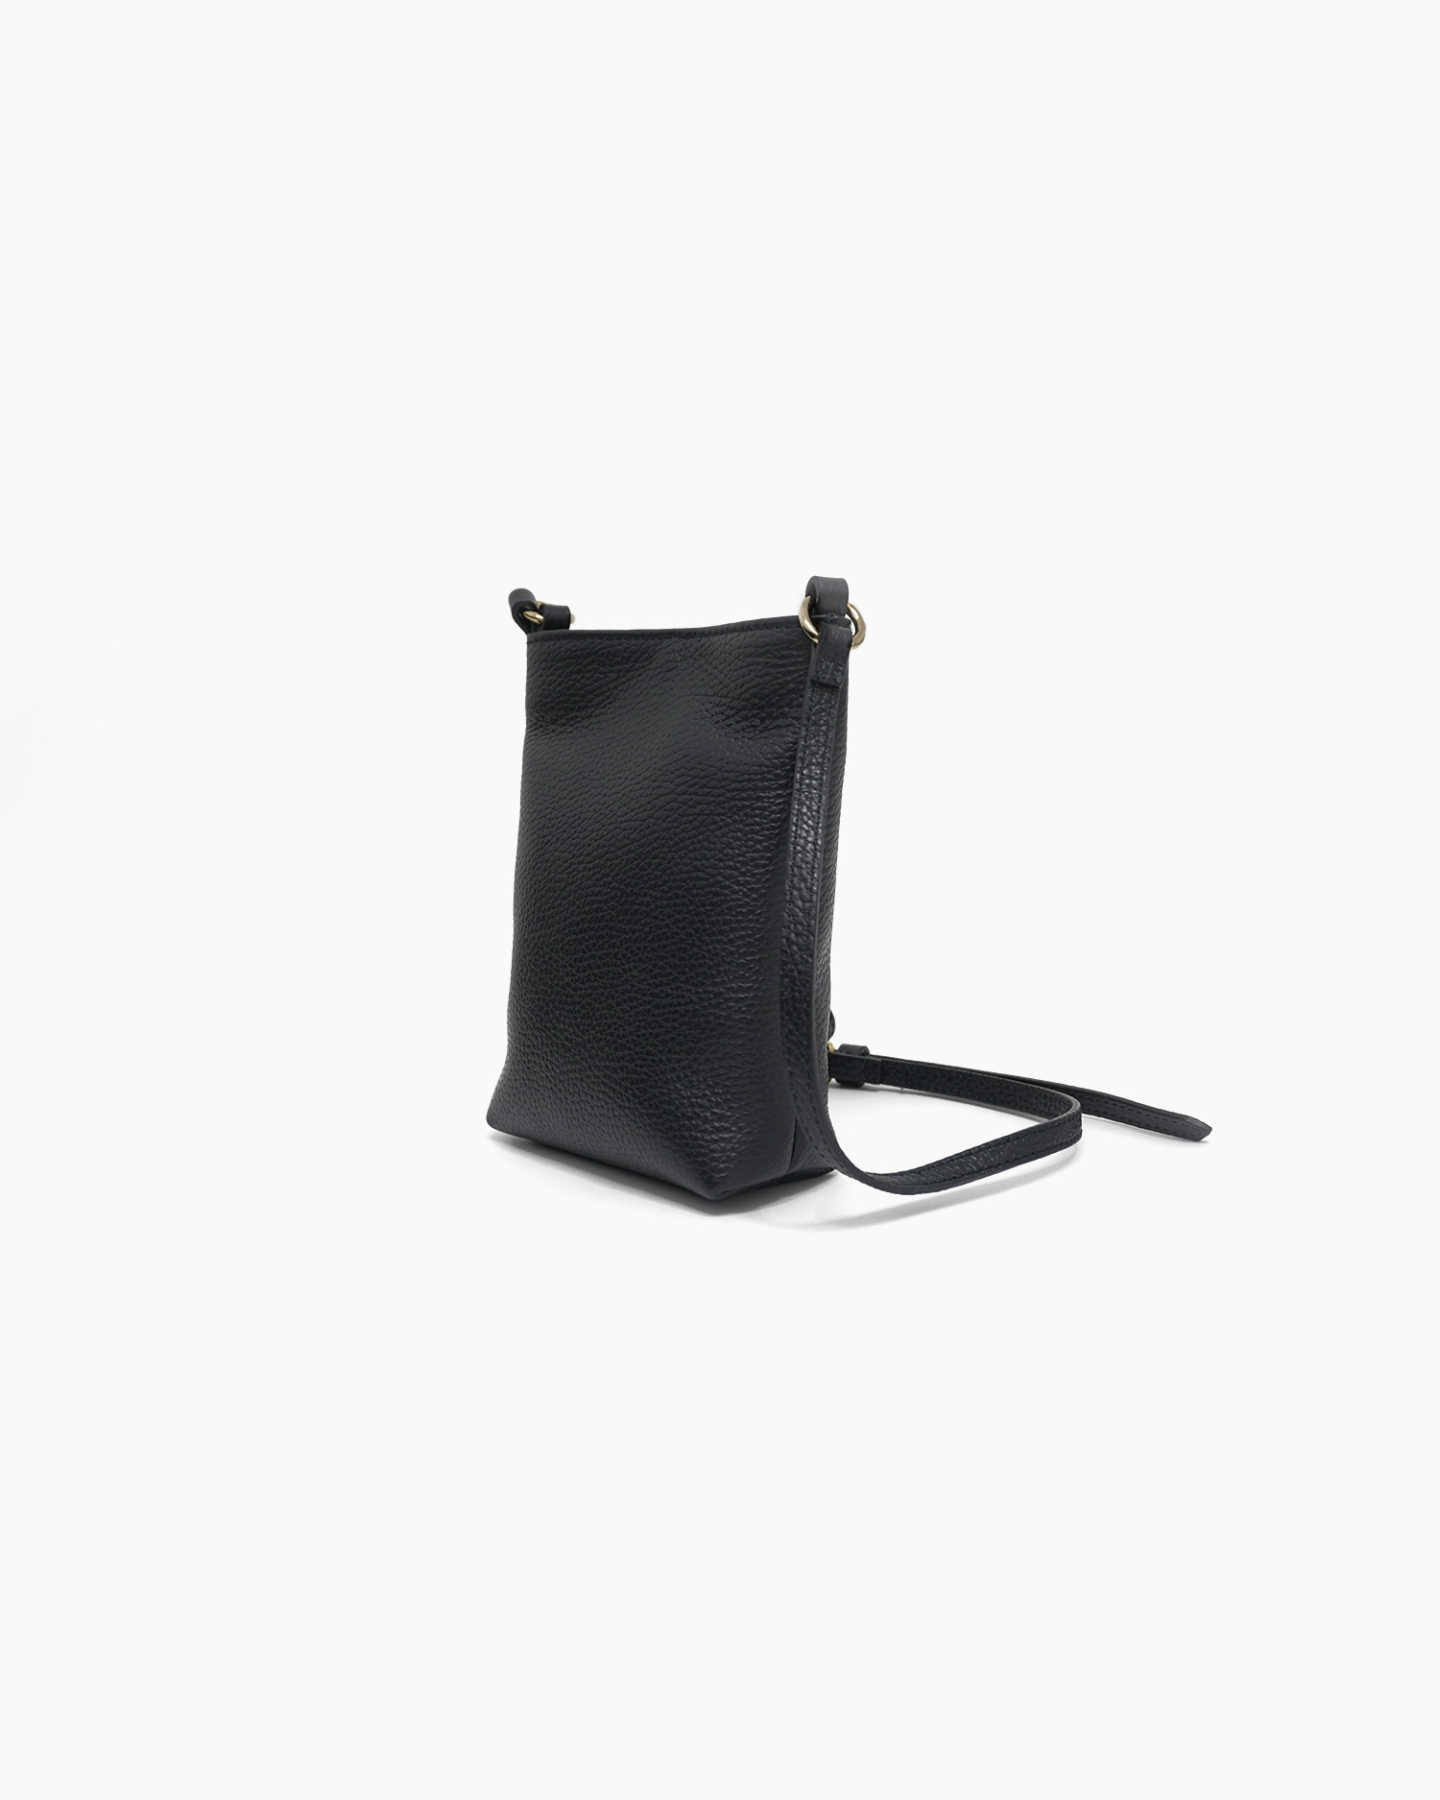 Italian Pebbled Leather Phone Crossbody - Black - 7 - Thumbnail